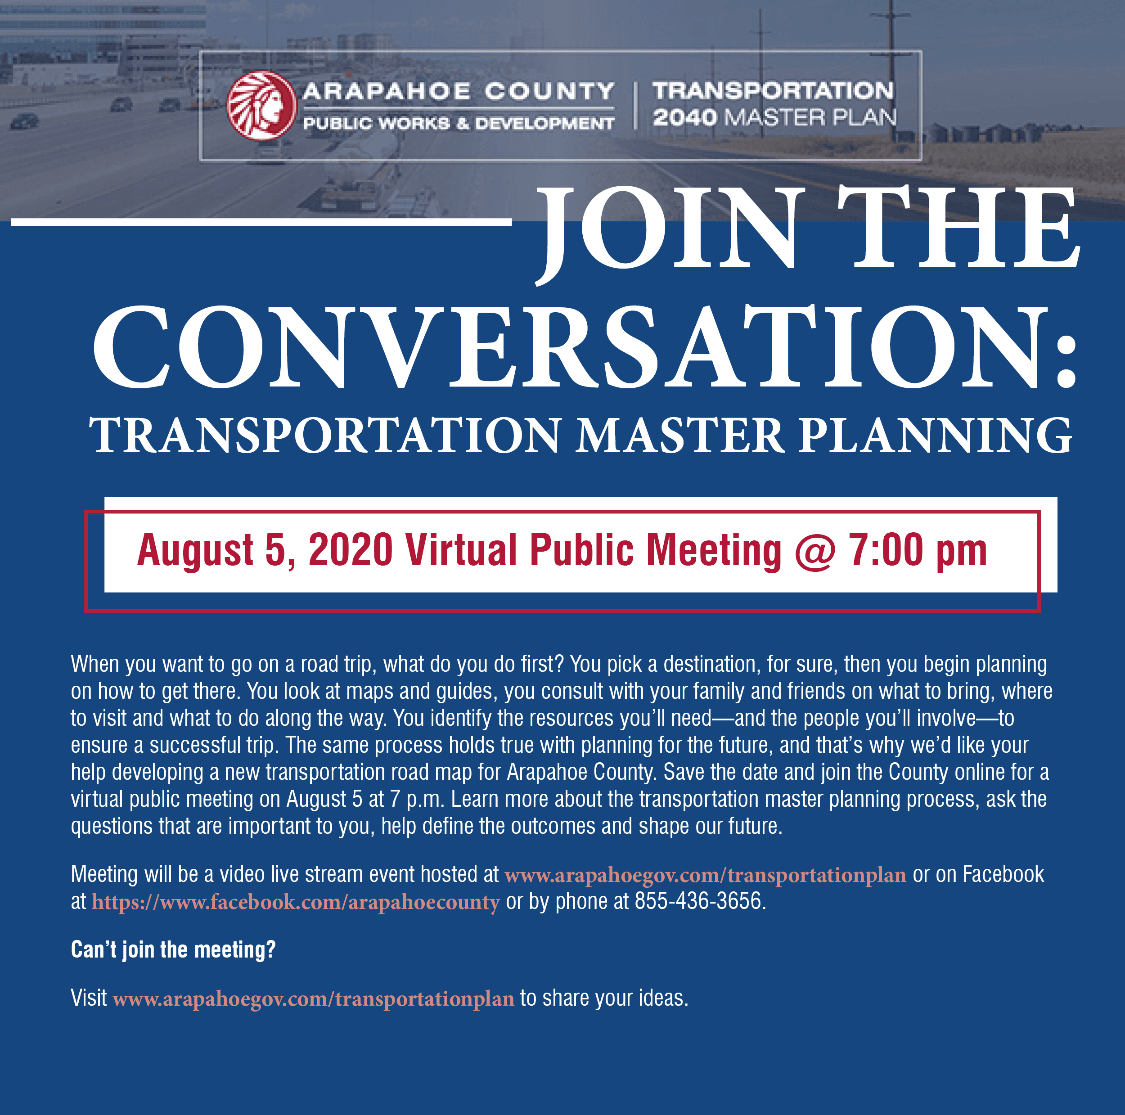 Join the conversation about transportation needs